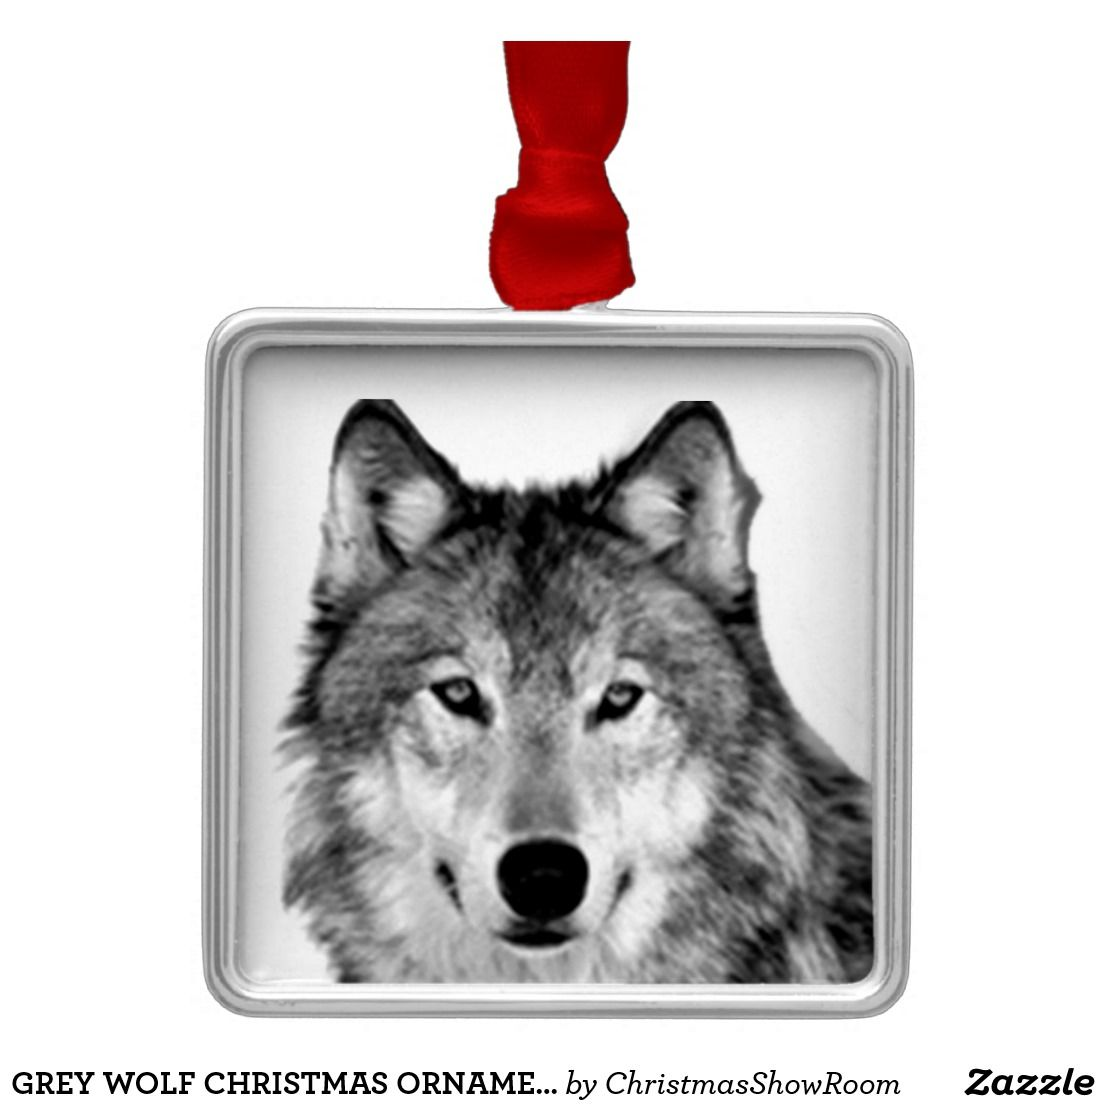 Grey wolf christmas ornament | Gray wolf and Christmas ornament